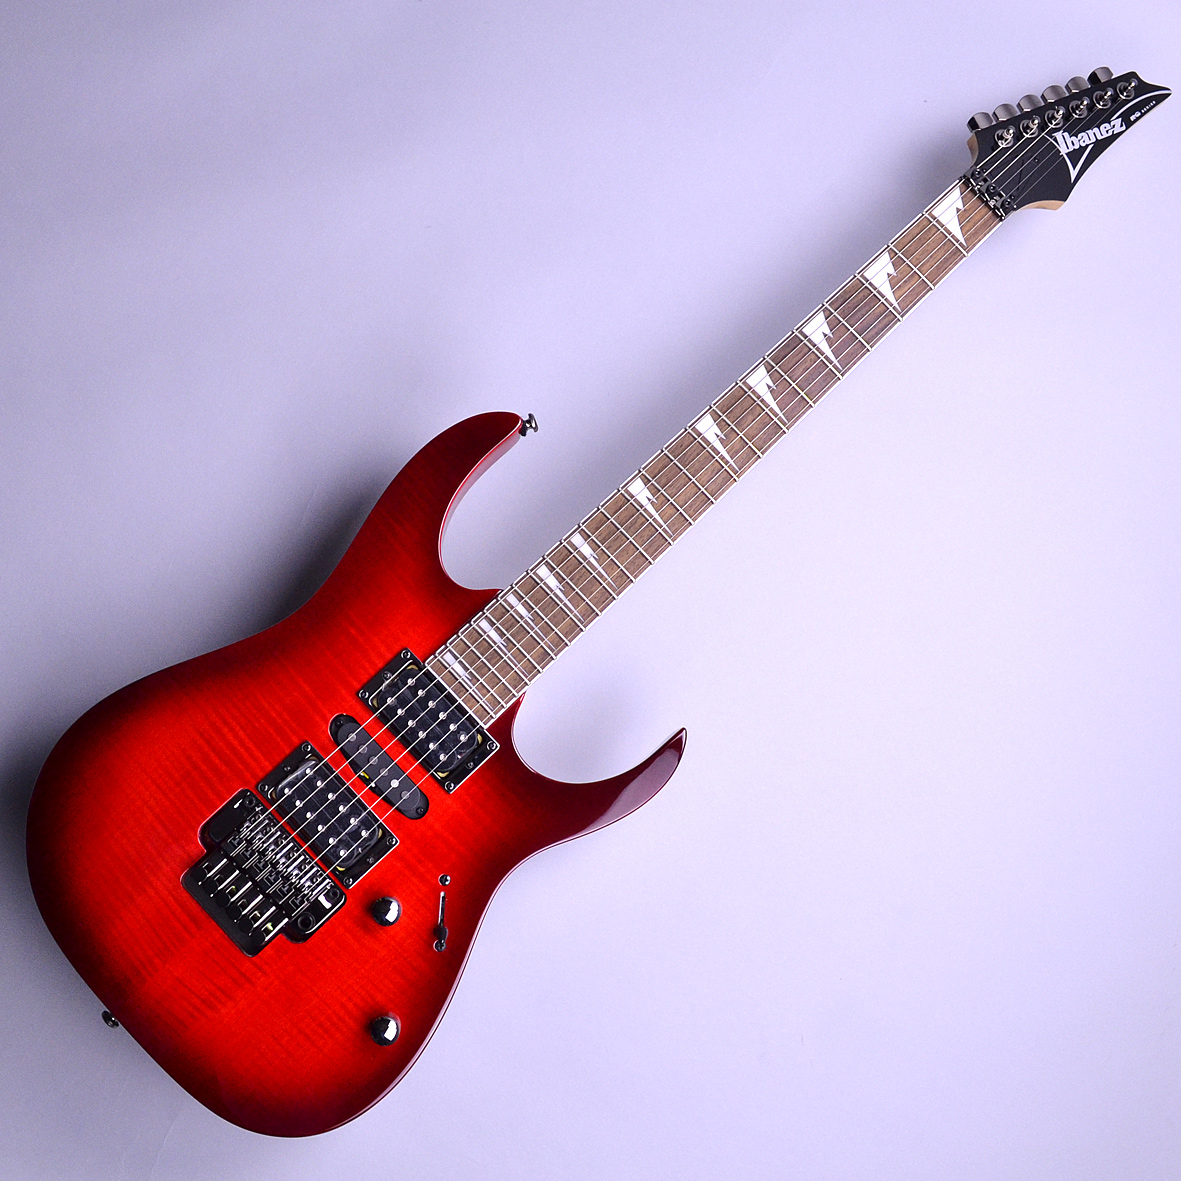 RG370FMZ  Transparent Red Burst